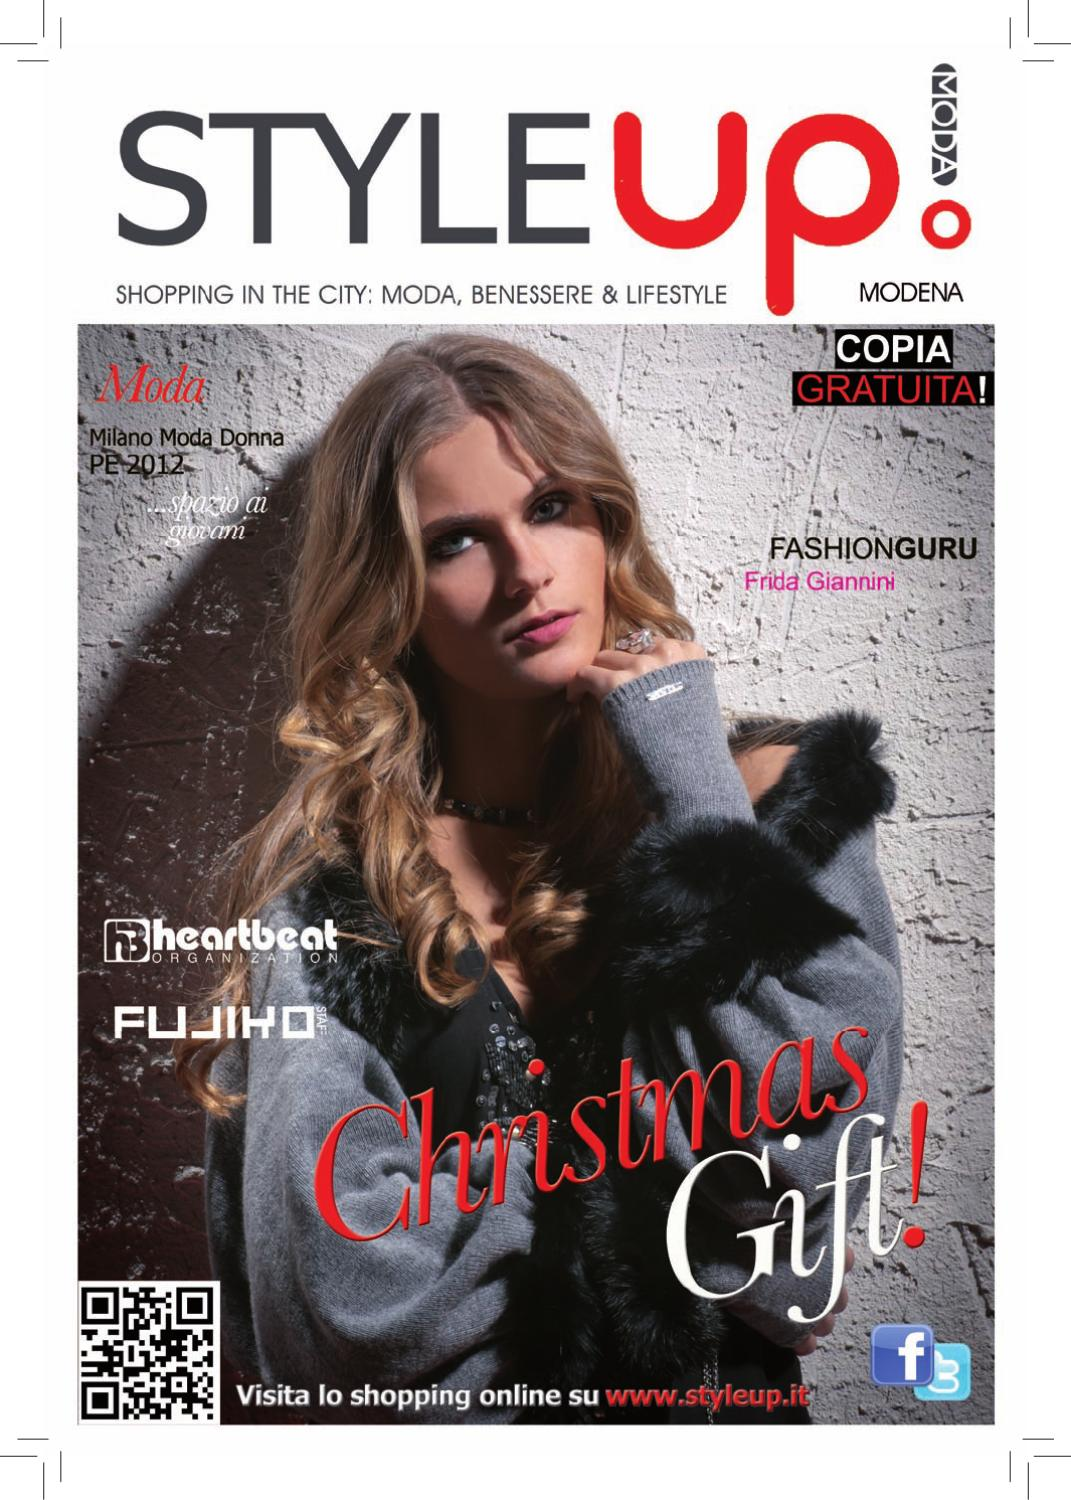 STYLEup! Moda MODENA nr 10 by StyleUp! - issuu 2f5df02b517